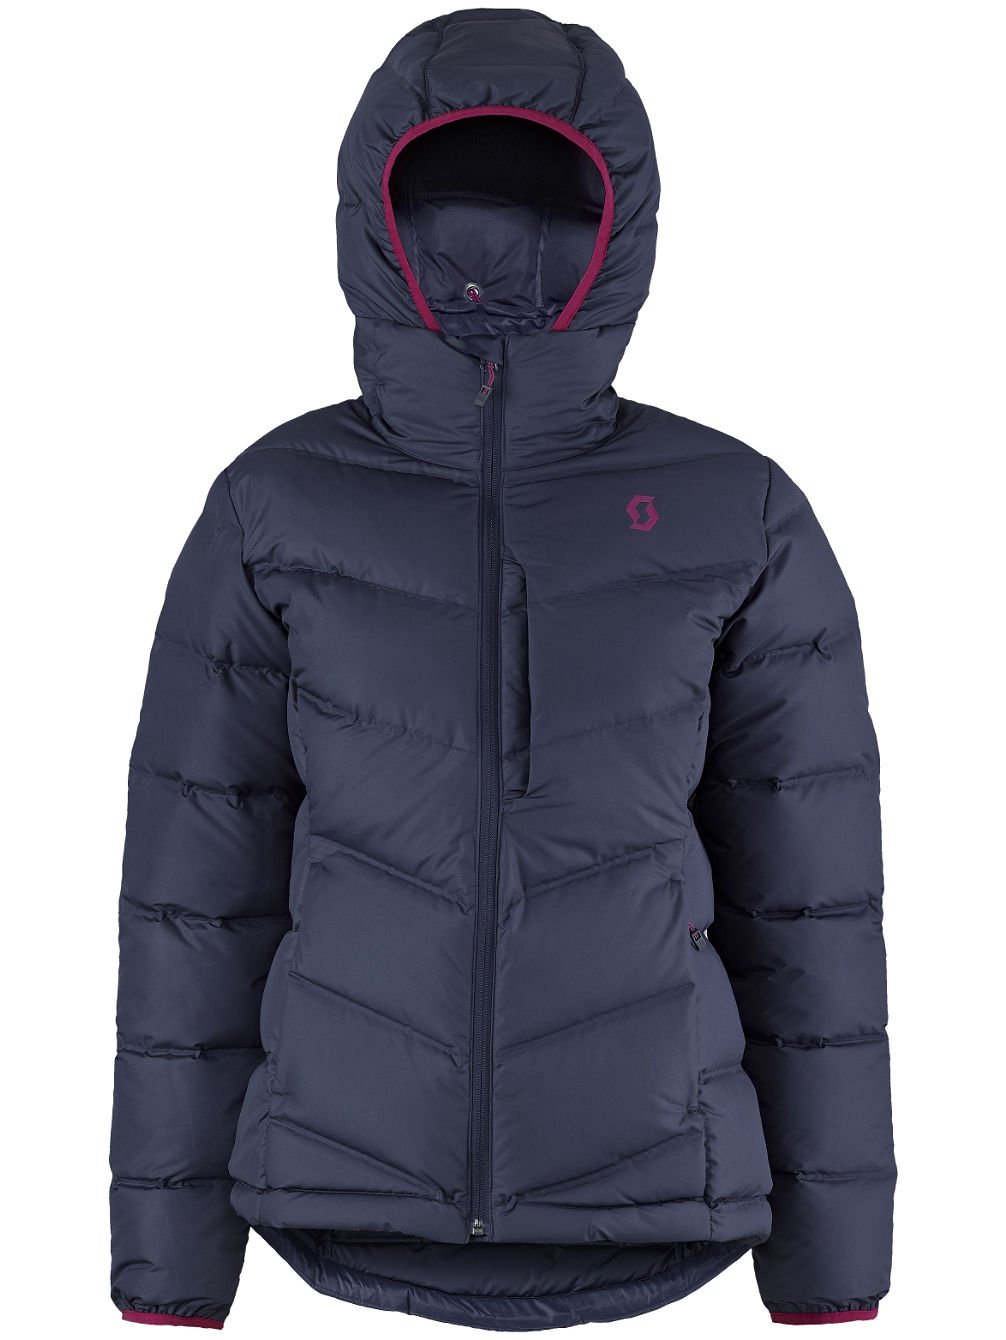 scott-insuloft-explorair-down-premi-jacket